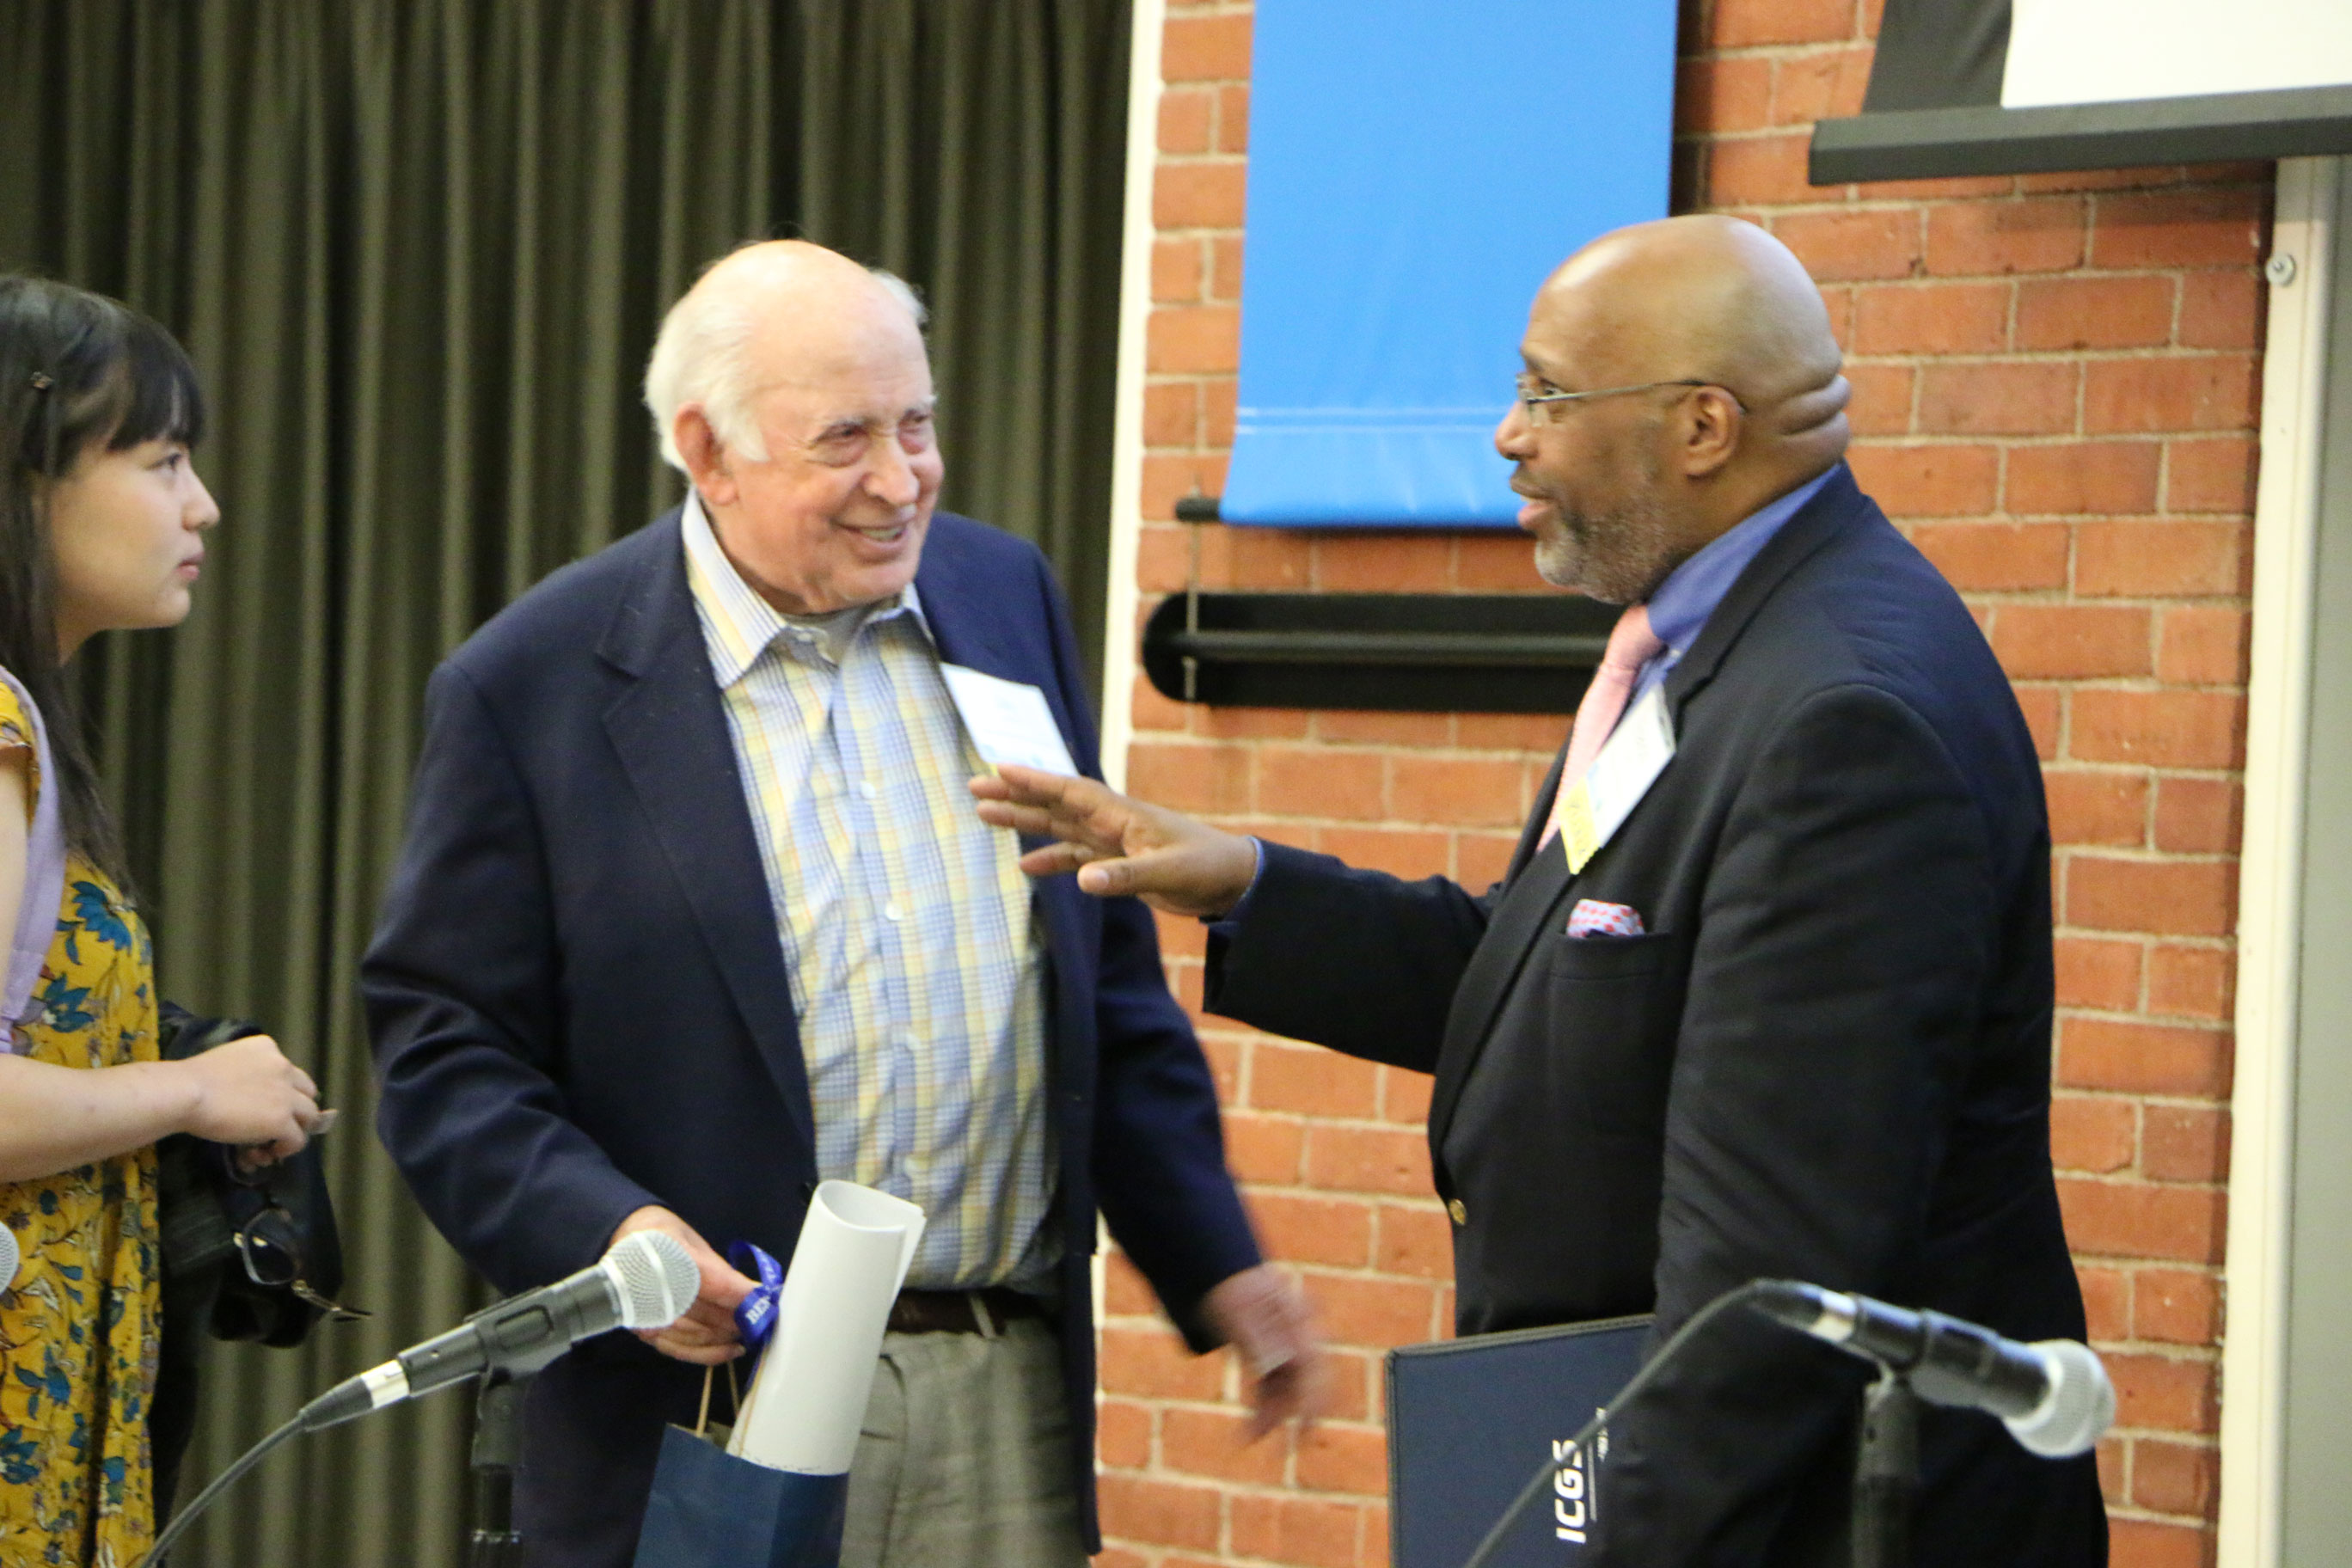 Panelists Jay Lorsch and Francis Byrd get acquainted